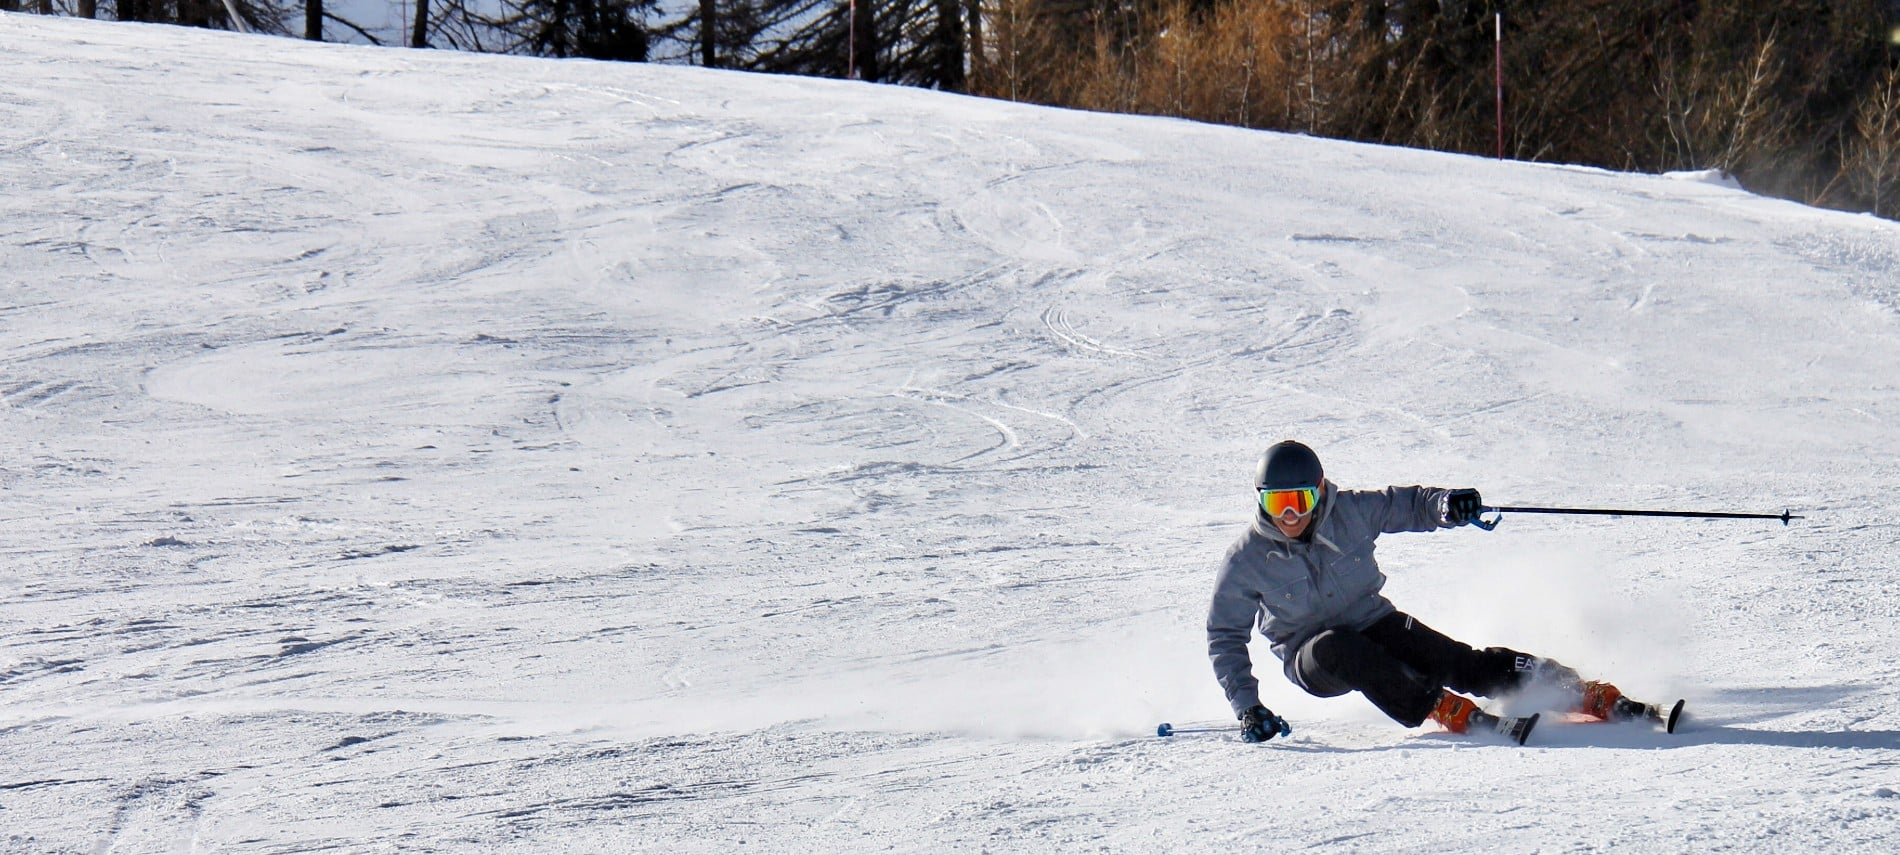 One lone skier in black pants and a blue jacket skiing down a large snow-covered hill with trees behind